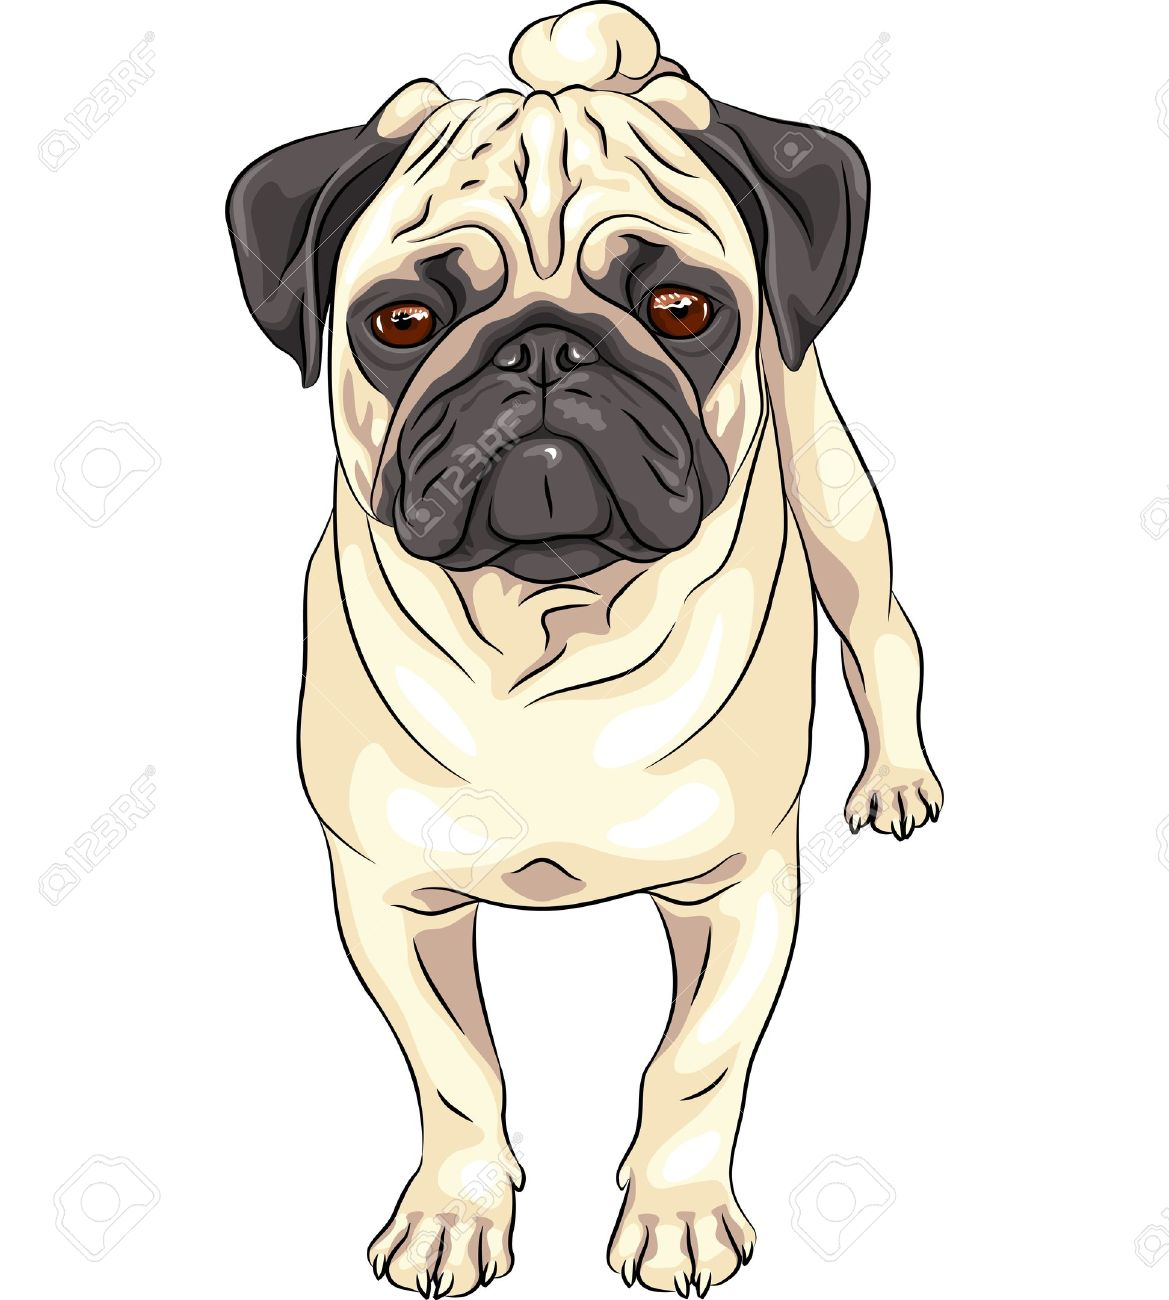 color sketch cute serious dog fawn pug breed stock vector 20987624